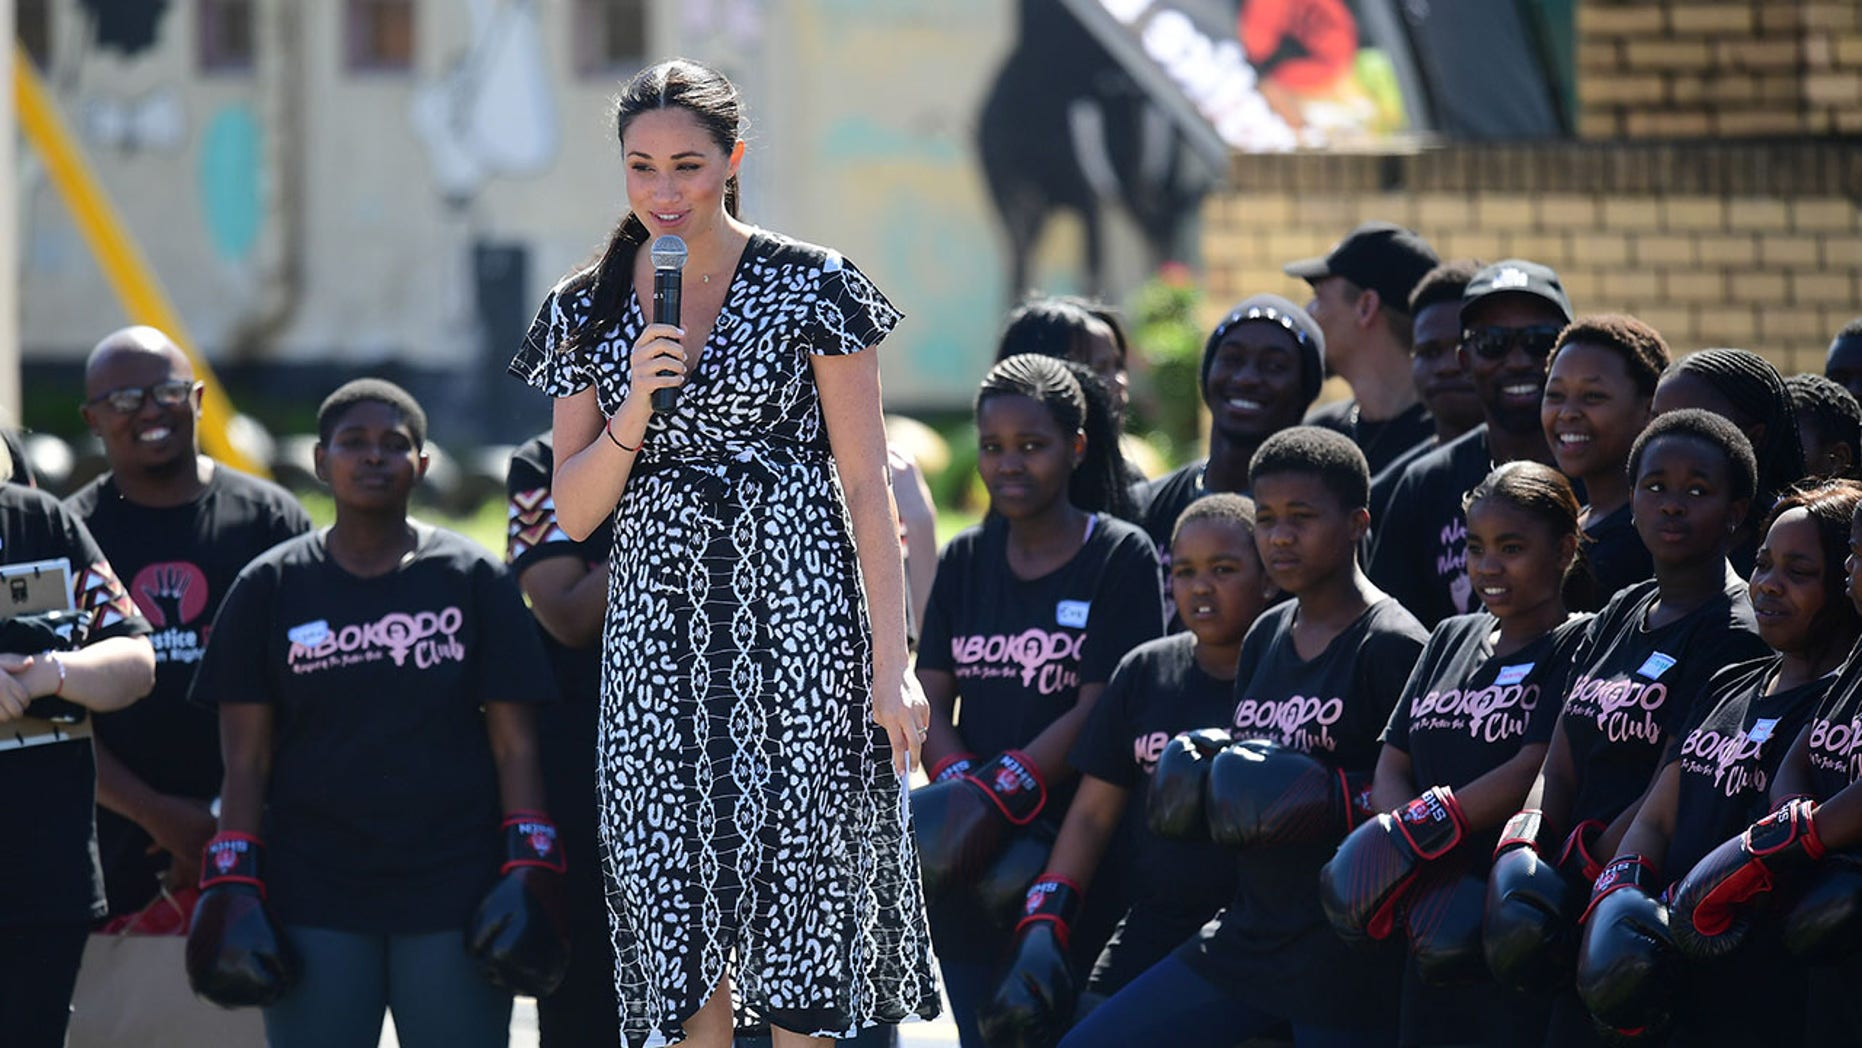 Meghan, Duchess of Sussex makes a speech as she visits a Justice Desk initiative in Nyanga township with Prince Harry, Duke of Sussex, during their royal tour of South Africa on September 23, 2019 in Cape Town, South Africa.